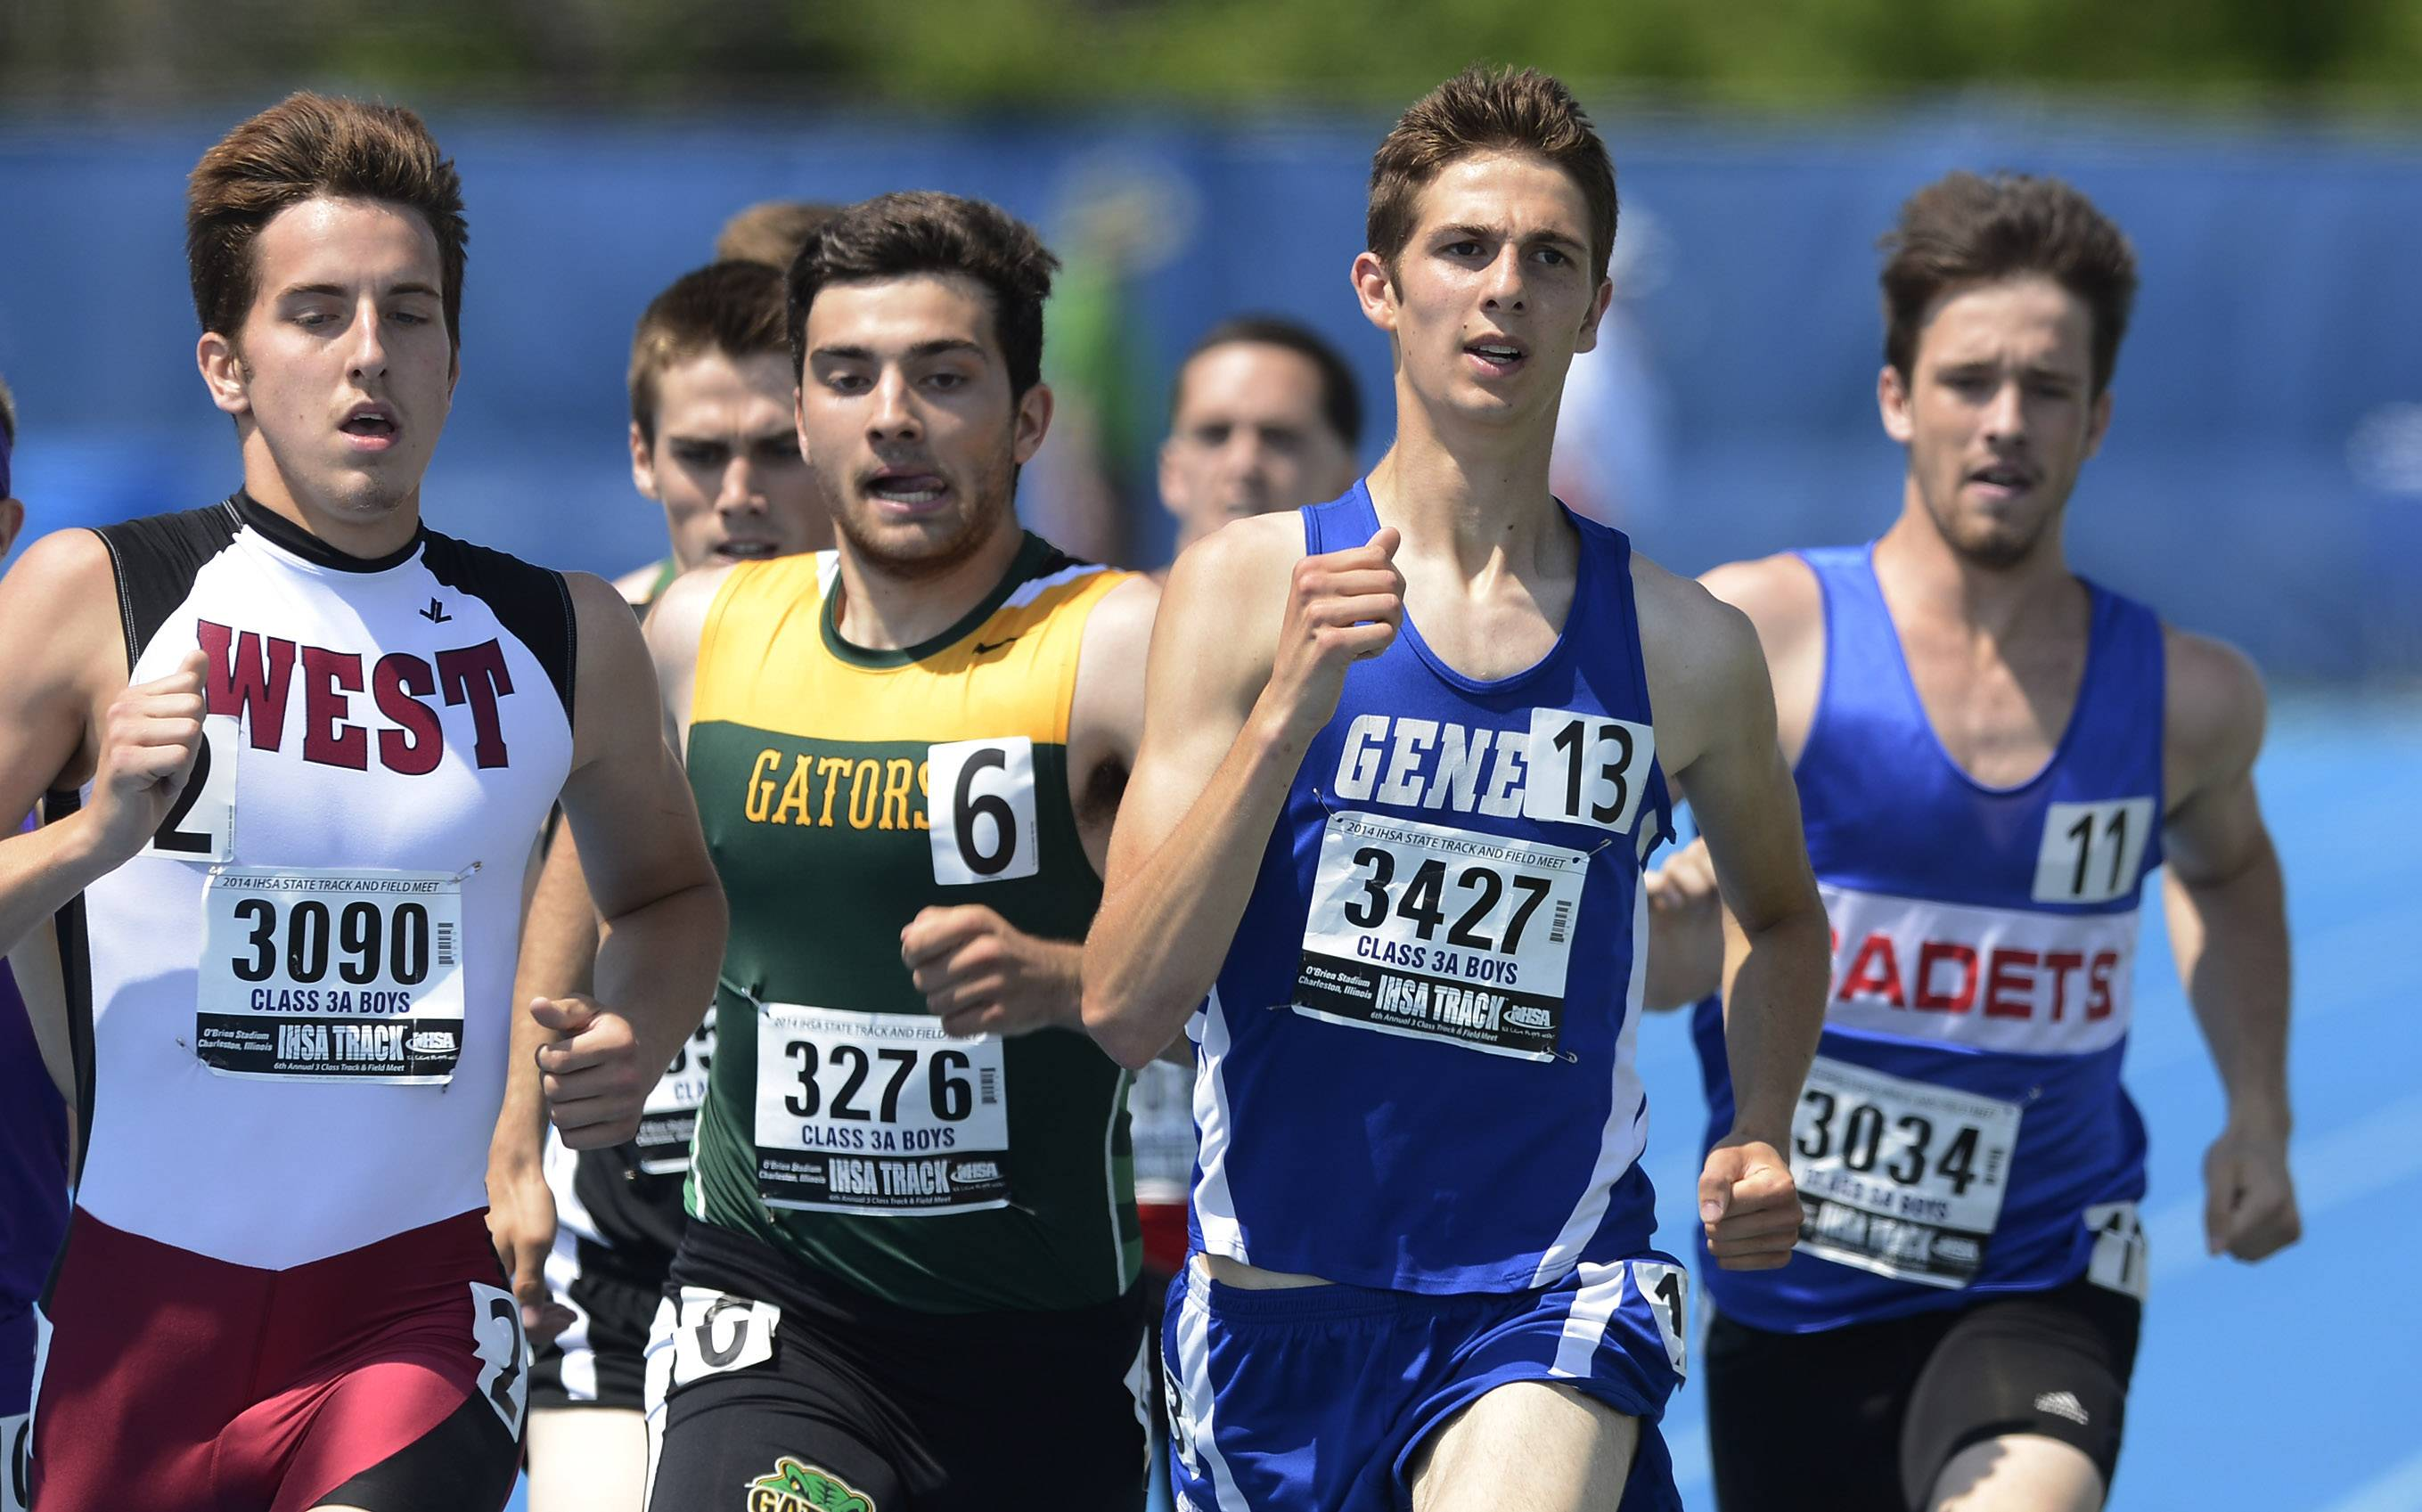 Geneva's Blaine Bartel, second from right, leads the pack after the first 400 meters in the 800-meter relay during the boys Class 3A state track and field preliminaries in Charleston Friday.